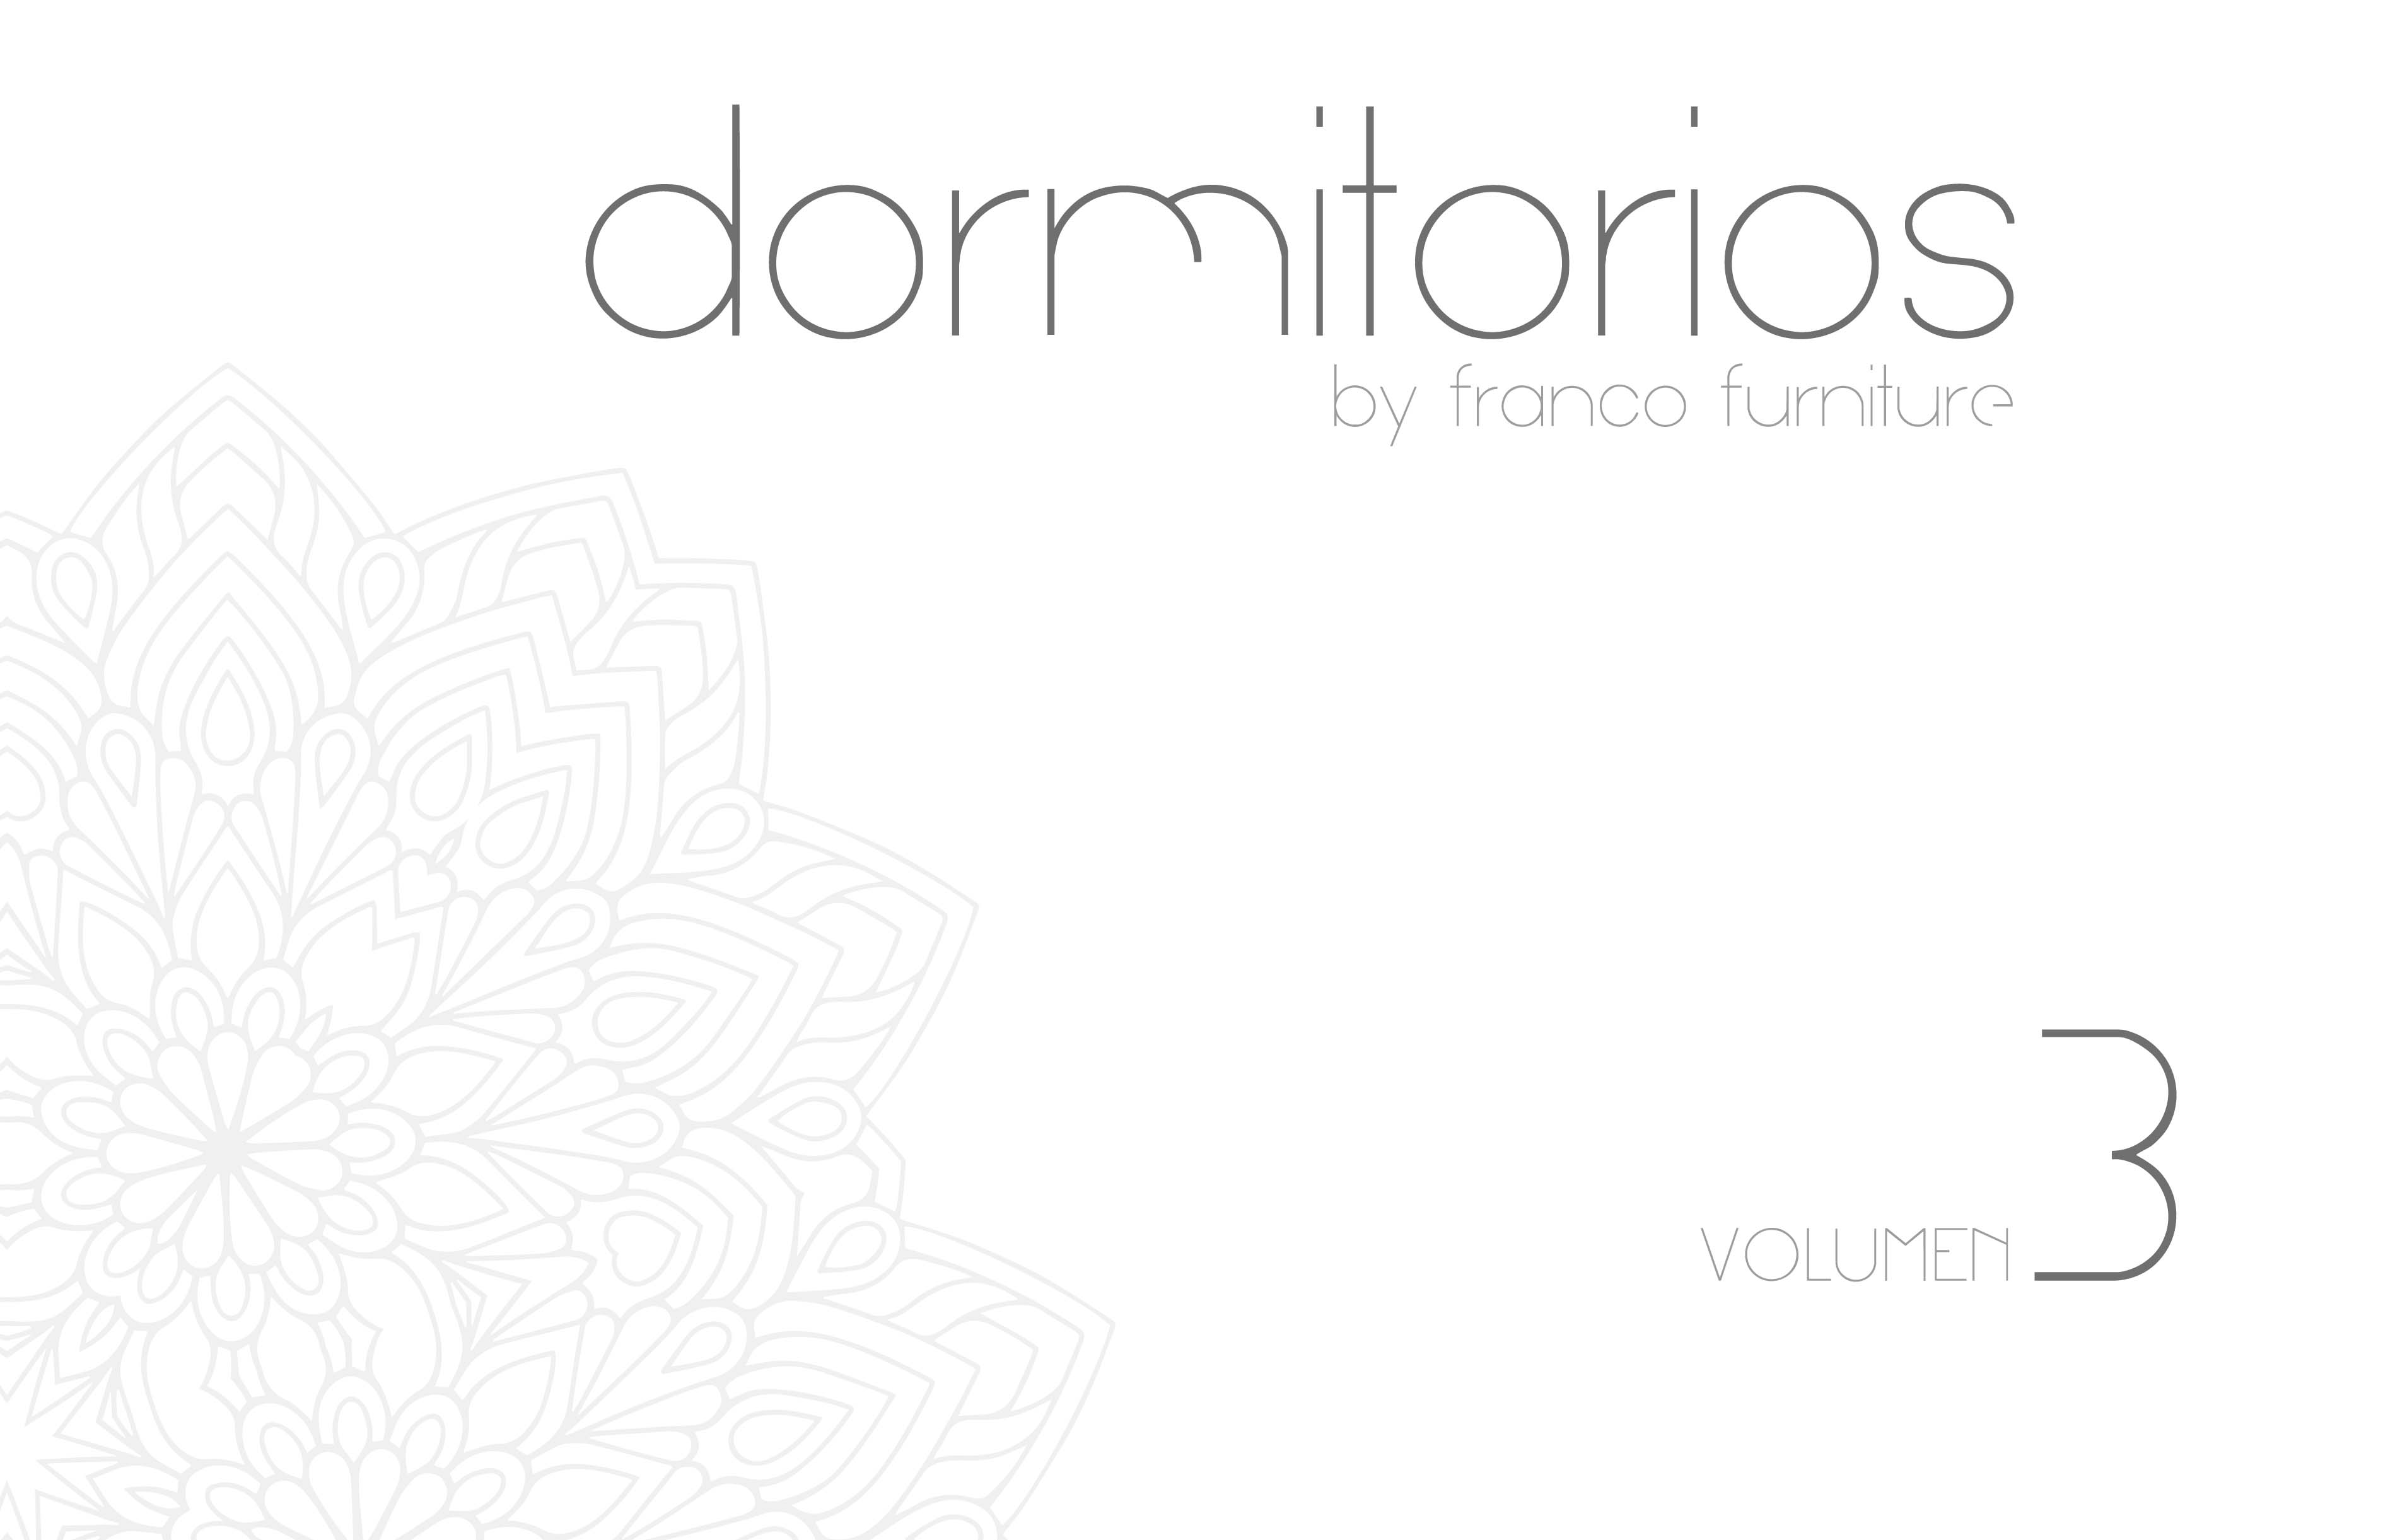 Franco Dormitorios Catalog Volume 3, Spain